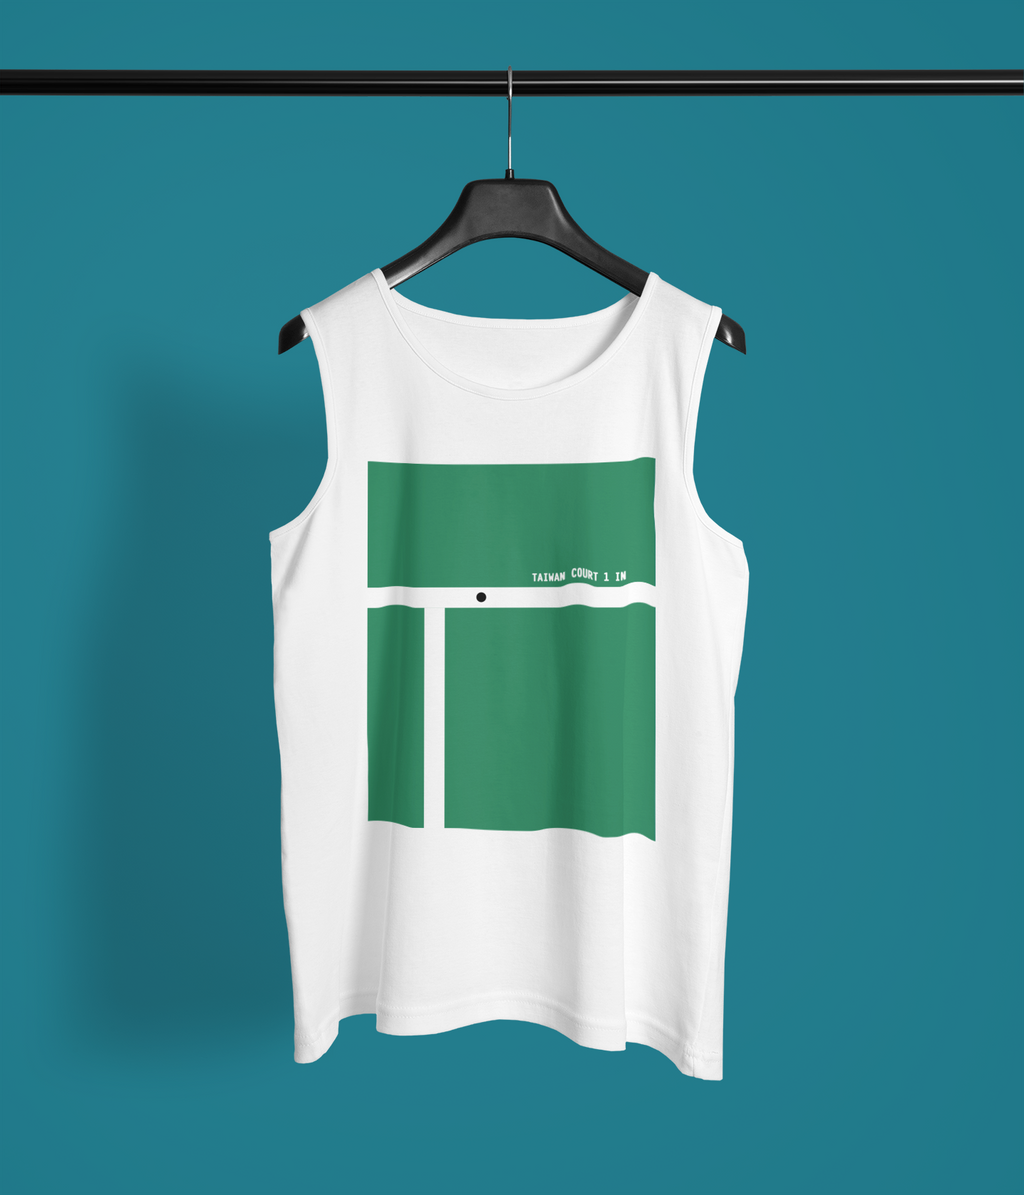 mockup-featuring-a-men-s-tank-top-hanging-from-a-dark-metal-pipe-1986-el1.png